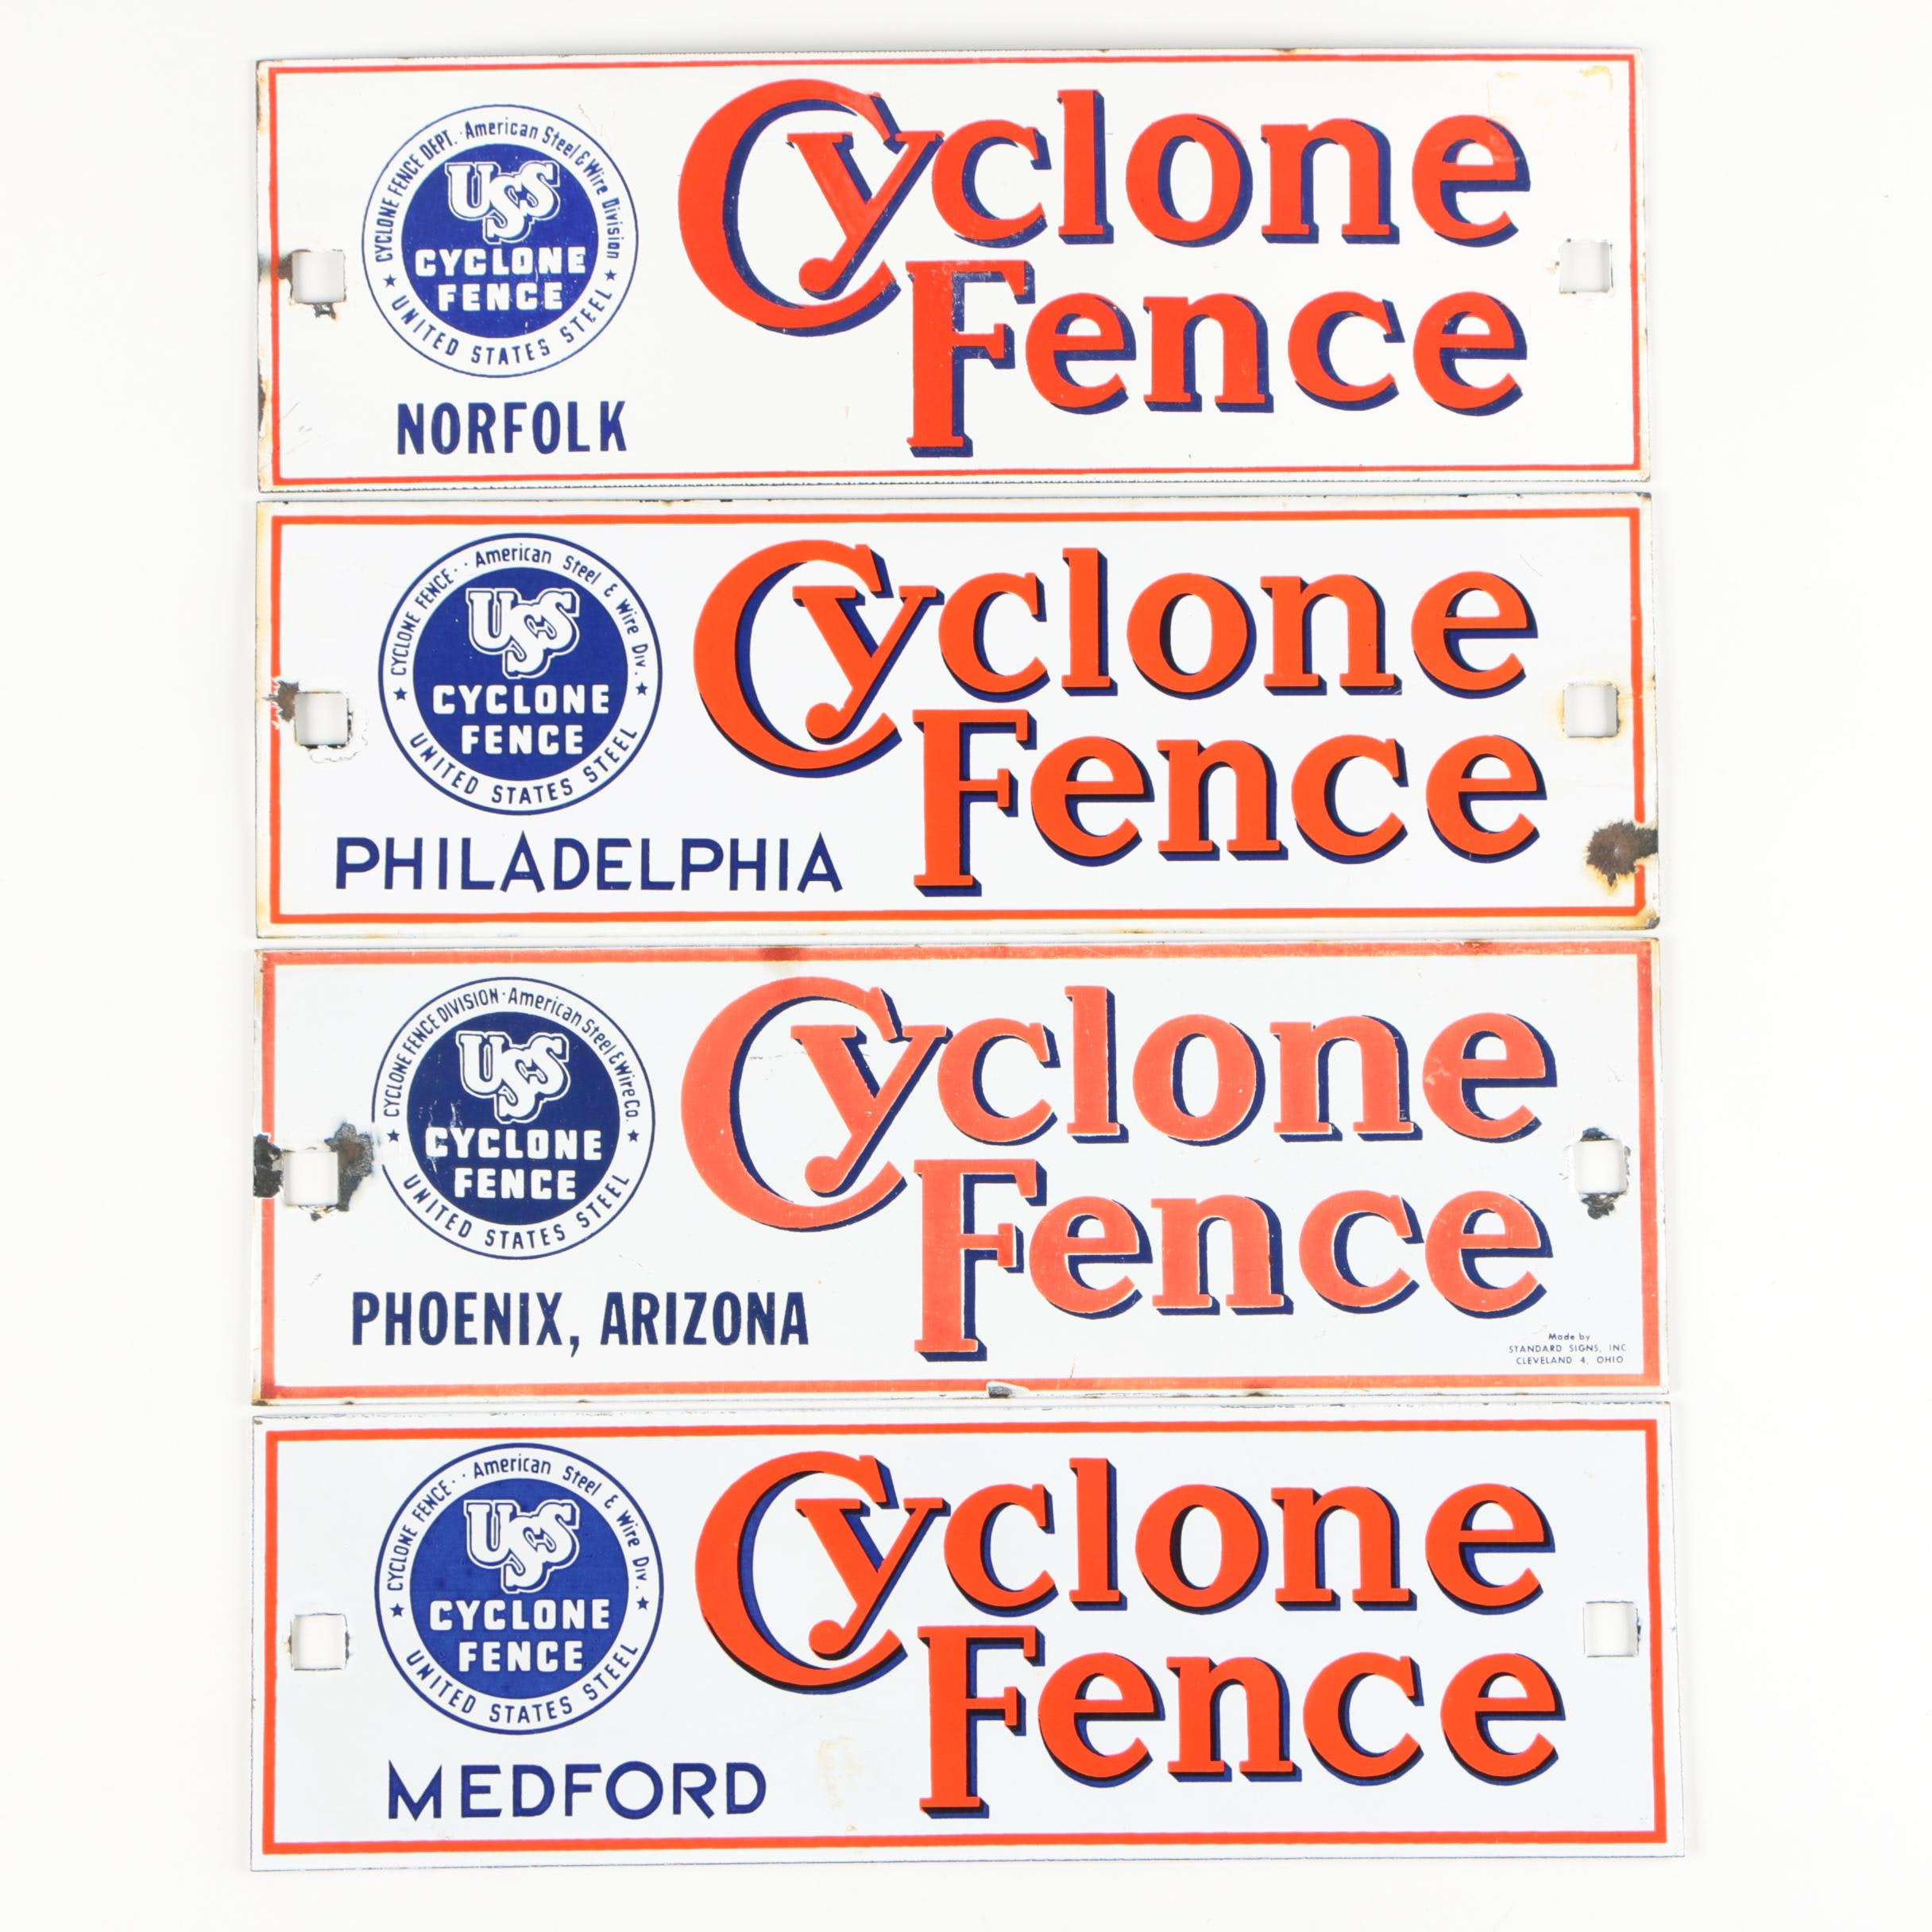 Cyclone Fence Enameled Metal Signs, 20th Century